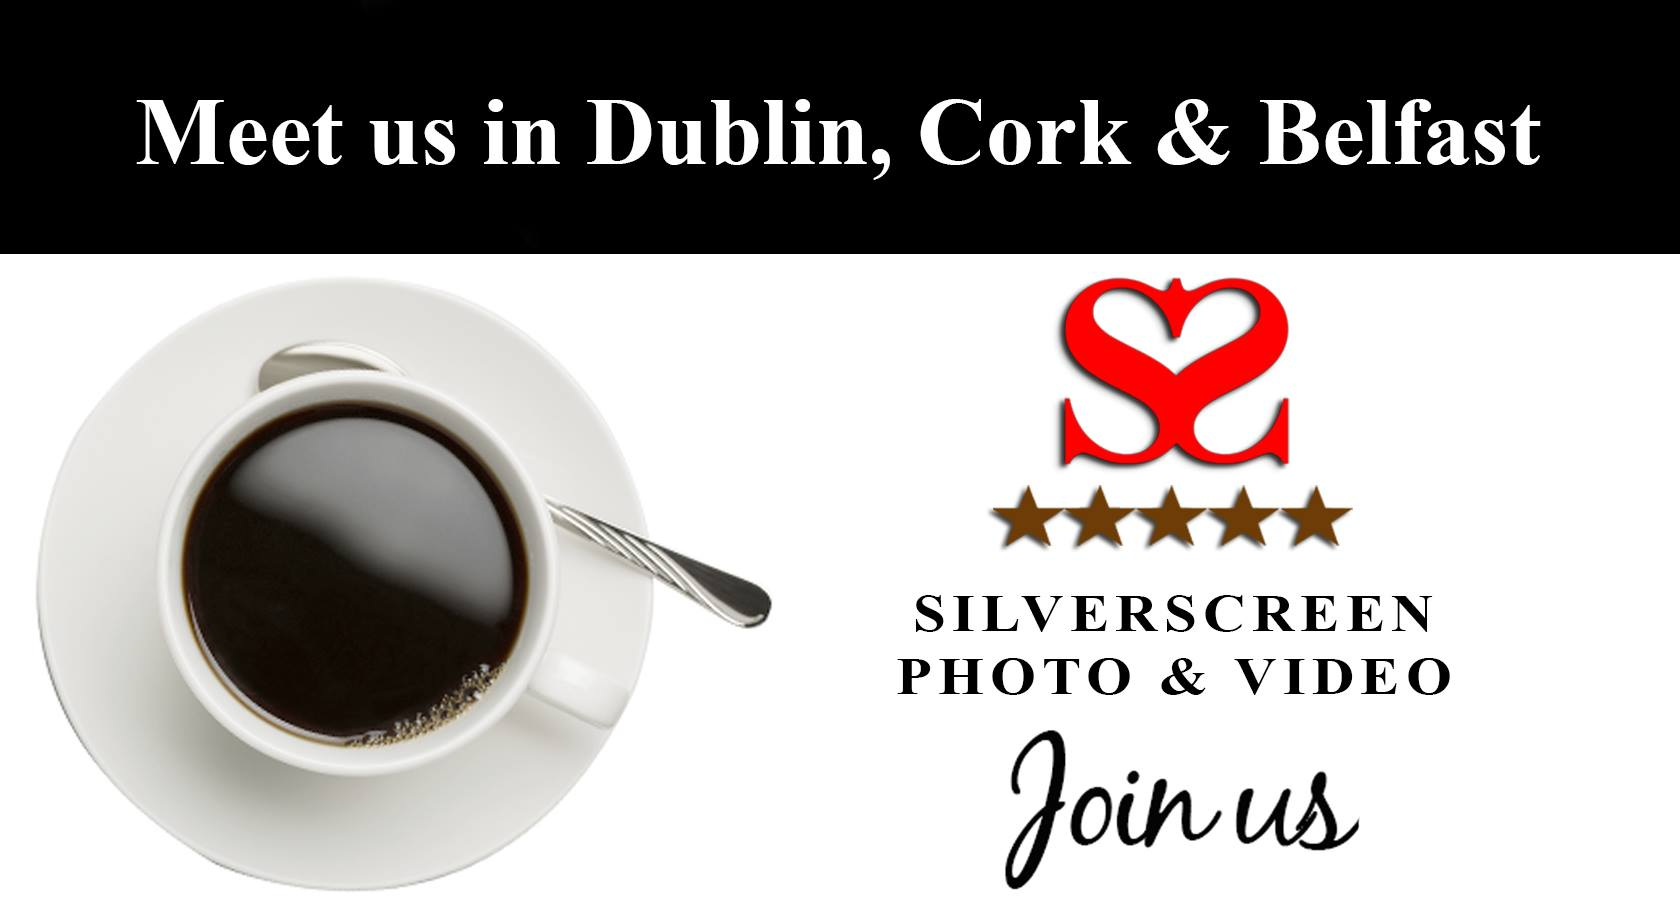 Getting married in Spain - Meet Silverscreen Photography & Video Dublin, Cork, Belfast